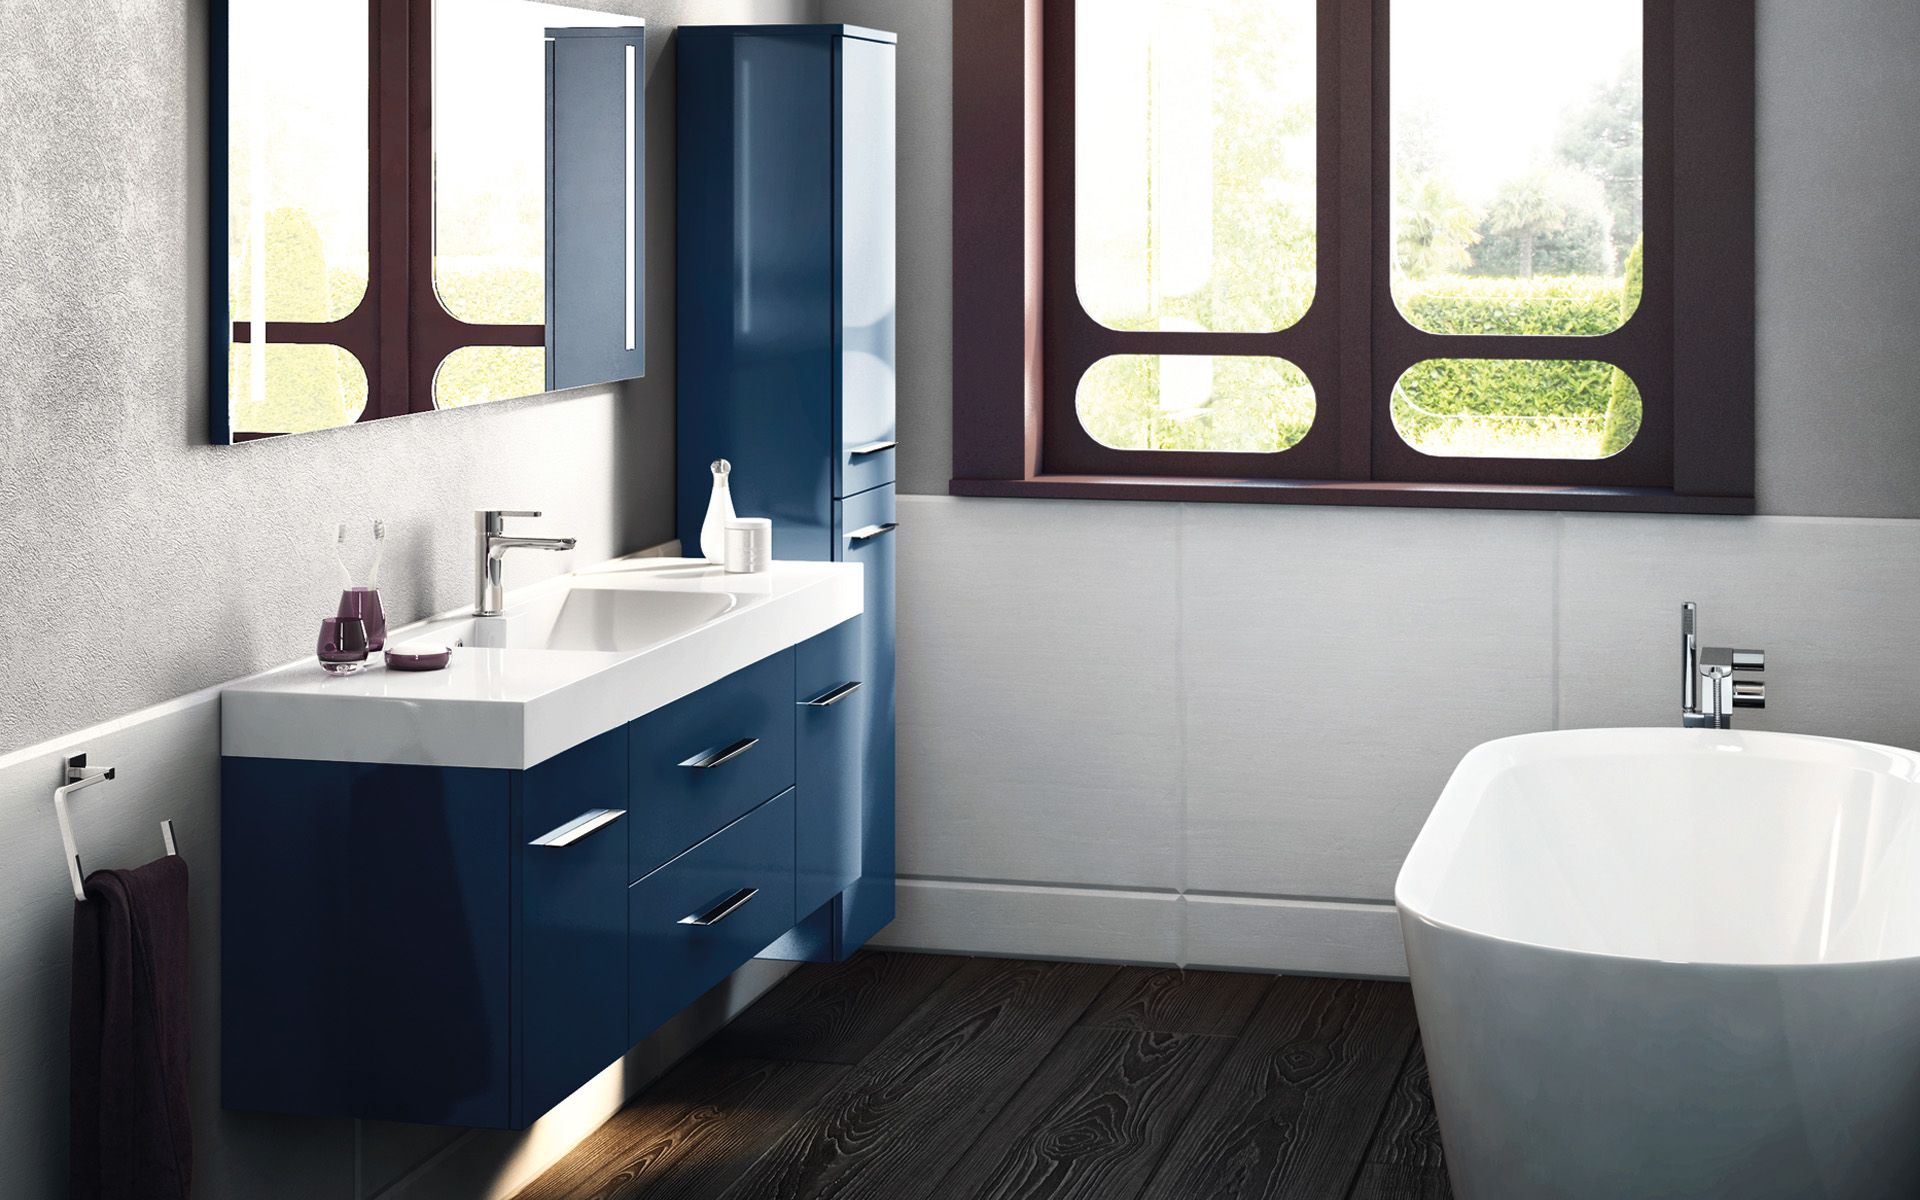 decotec obbo meuble salledebain blue bleu blue. Black Bedroom Furniture Sets. Home Design Ideas